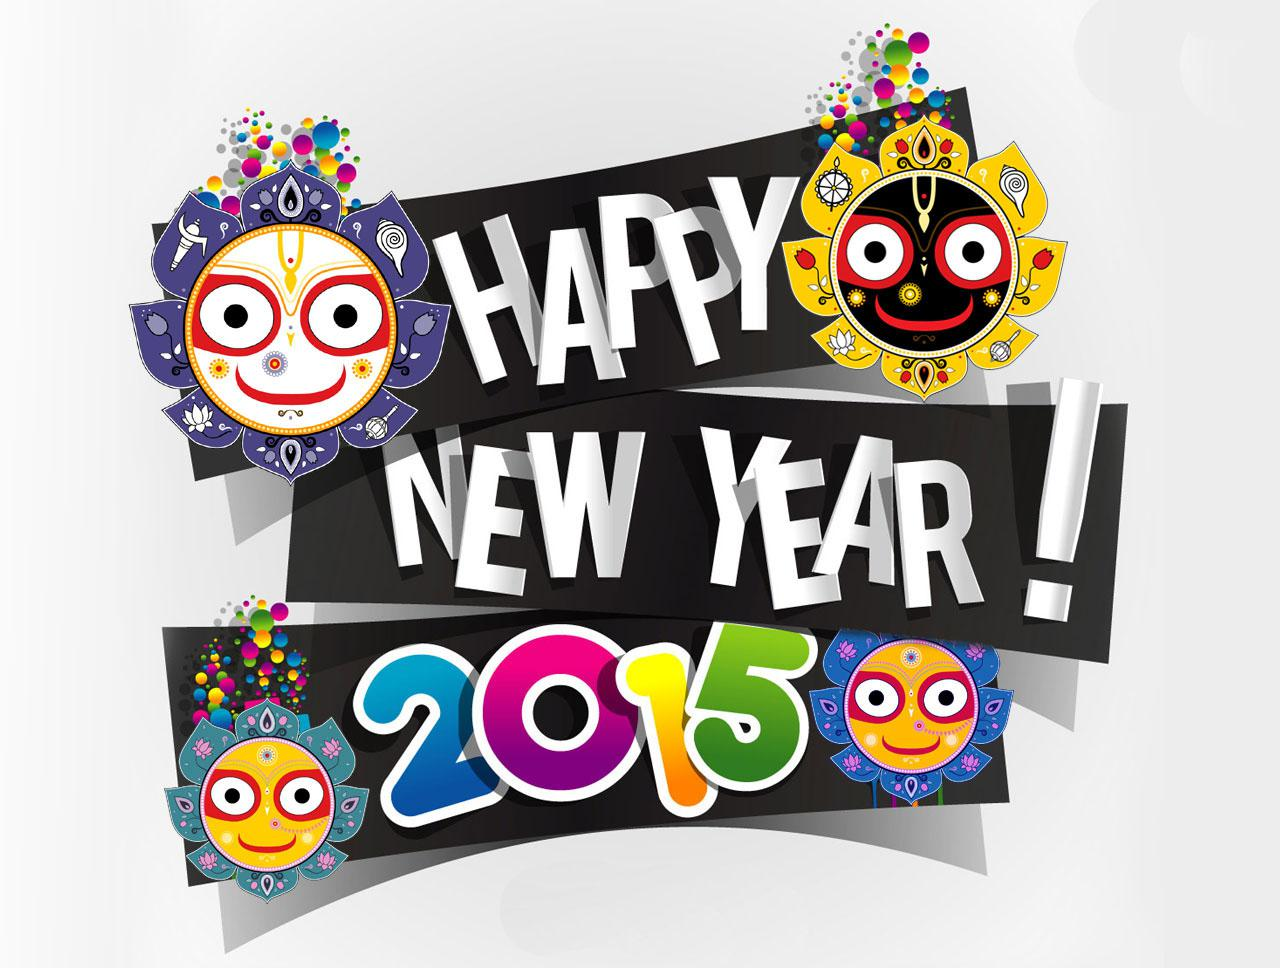 1280x968 Happy New Year 2015 Clip Art Images Free Download Netherton Moss